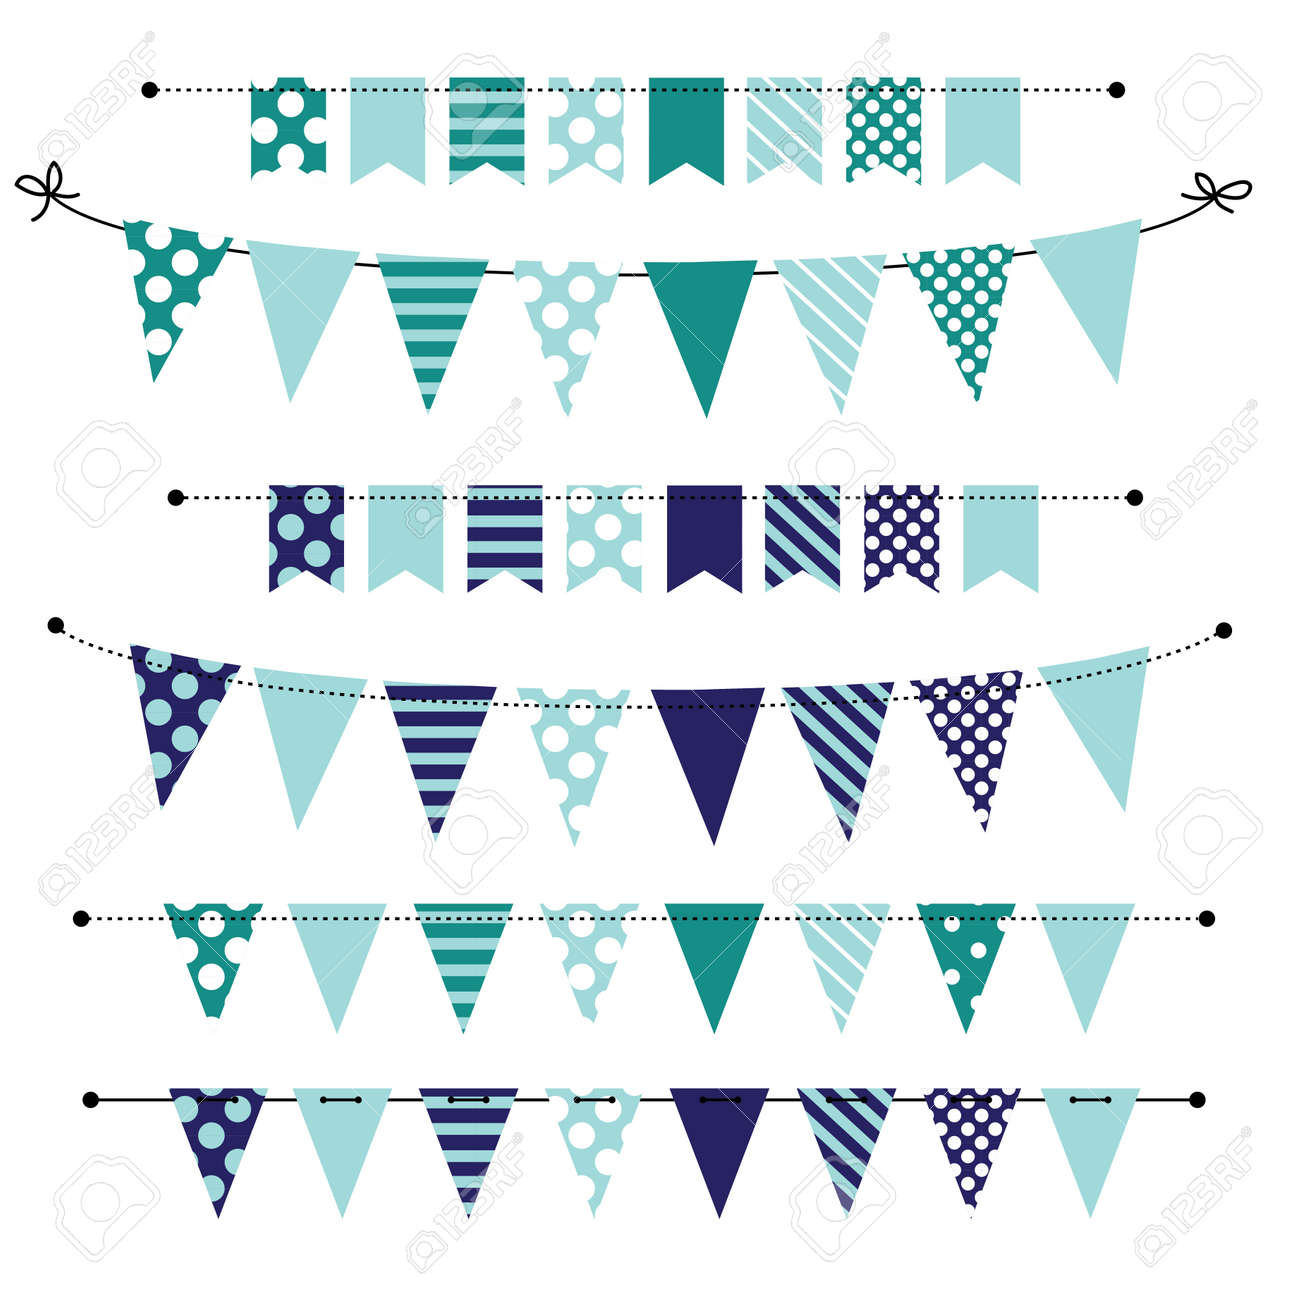 Blue Blank Banner Bunting Or Swag Templates For Scrapbooking Royalty Free Cliparts Vectors And Stock Illustration Image 27747480